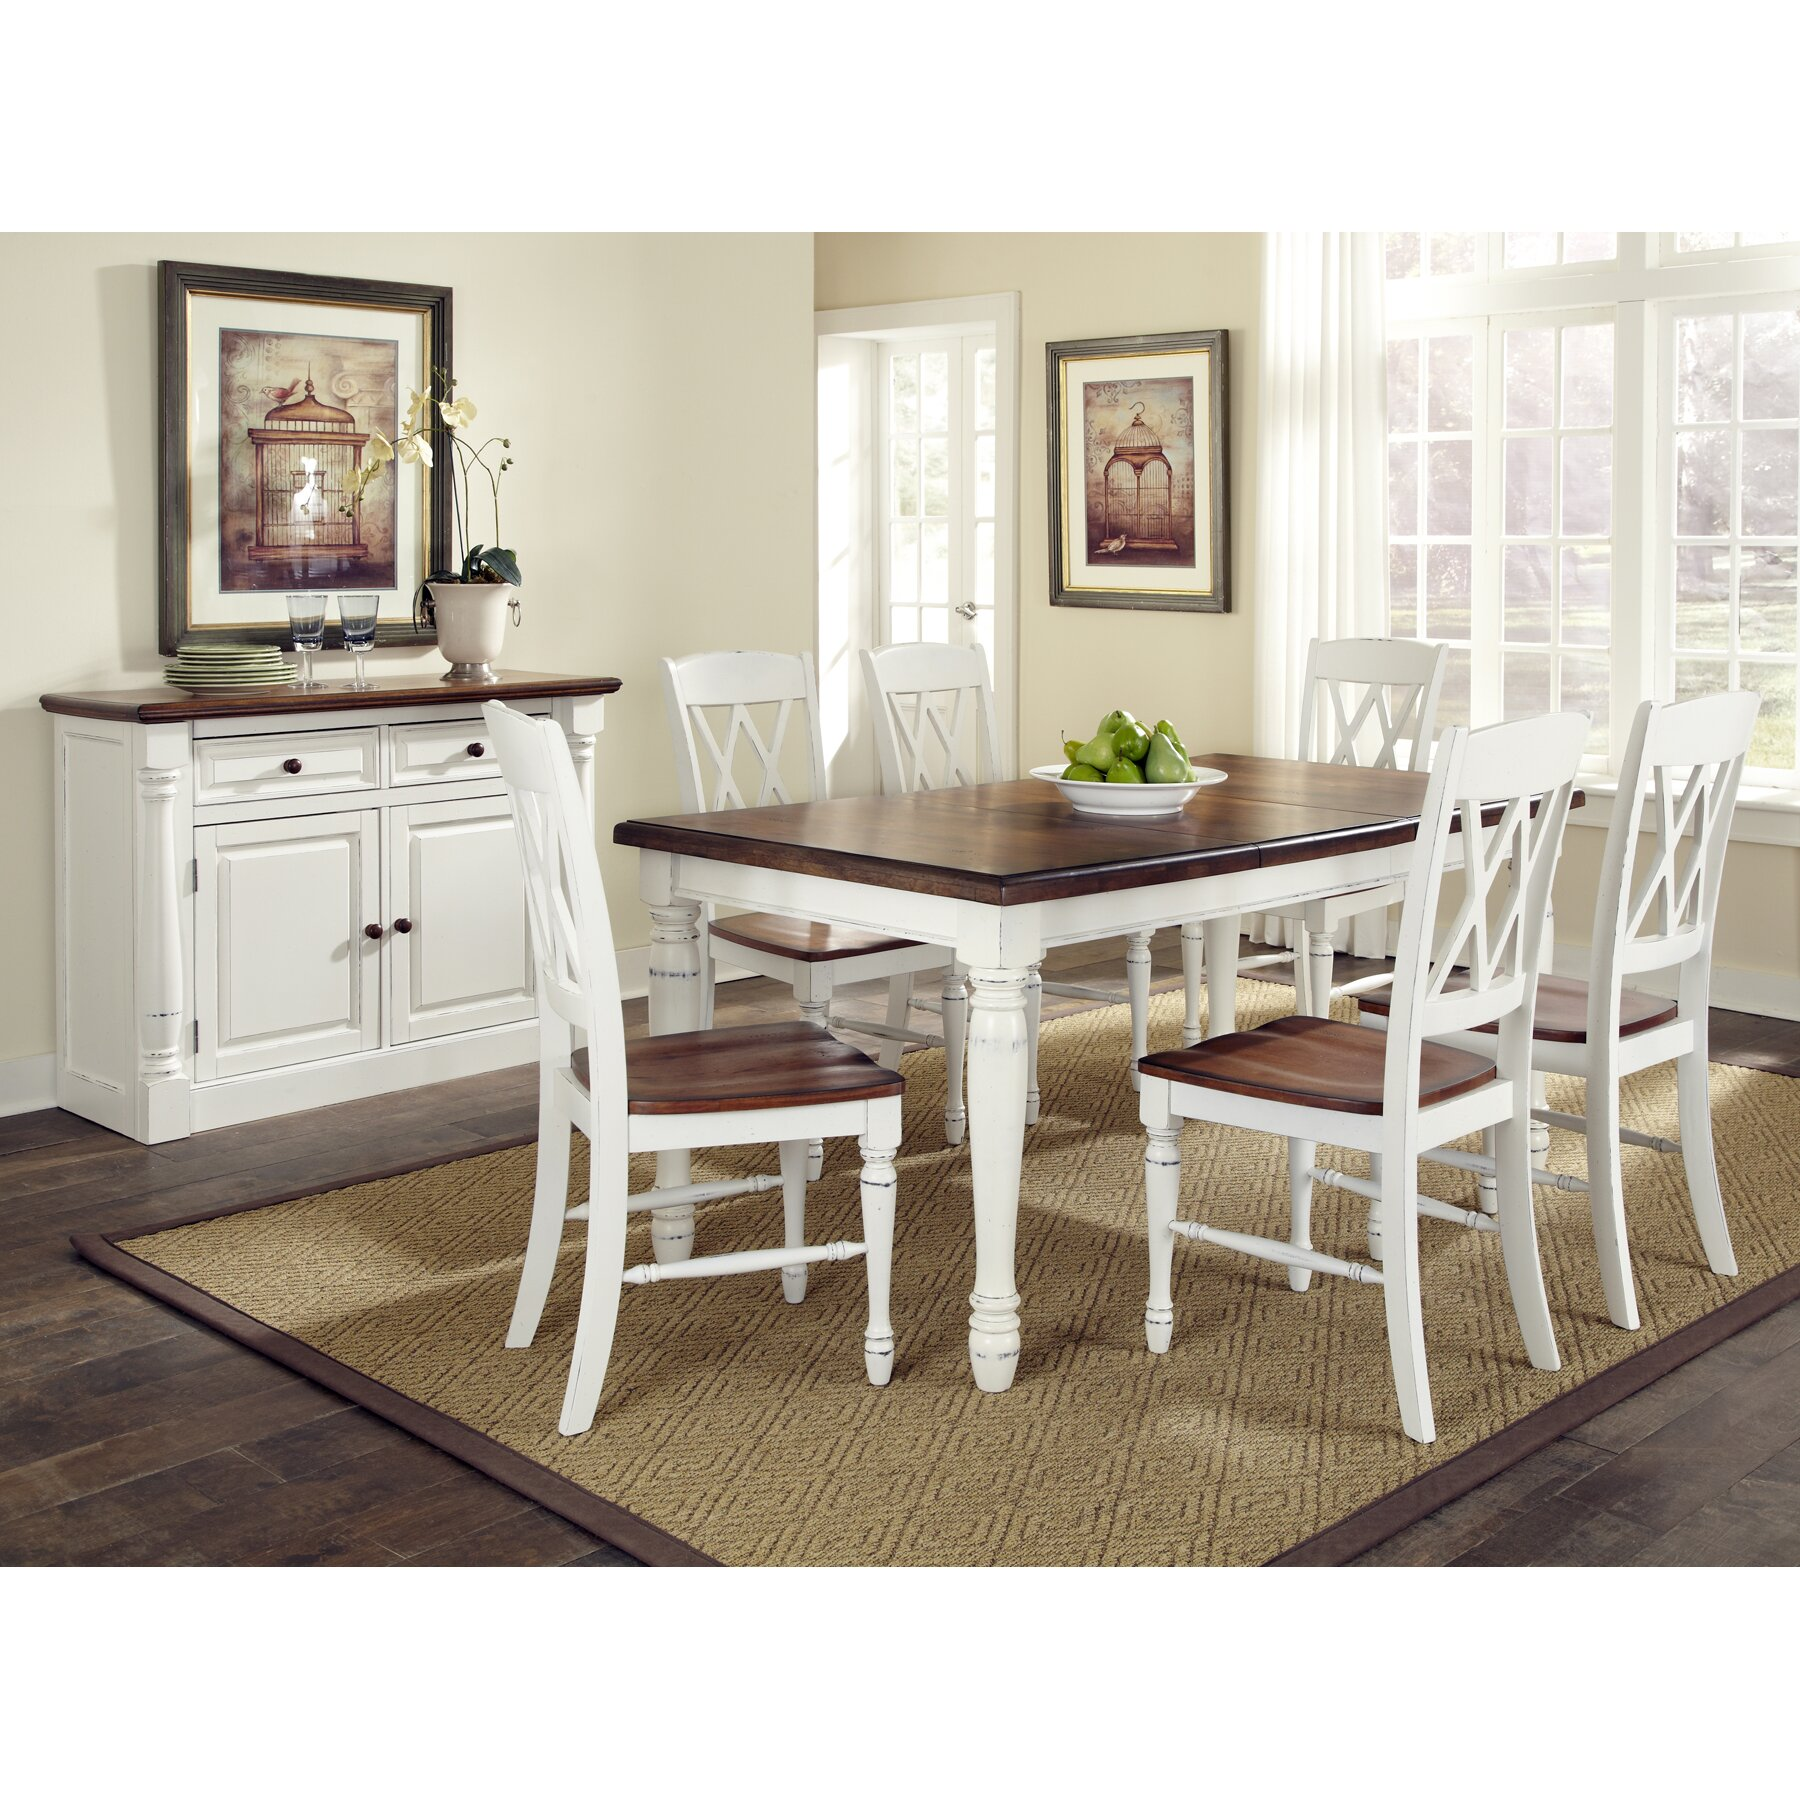 August Grove Shyanne 7 Piece Dining Set & Reviews